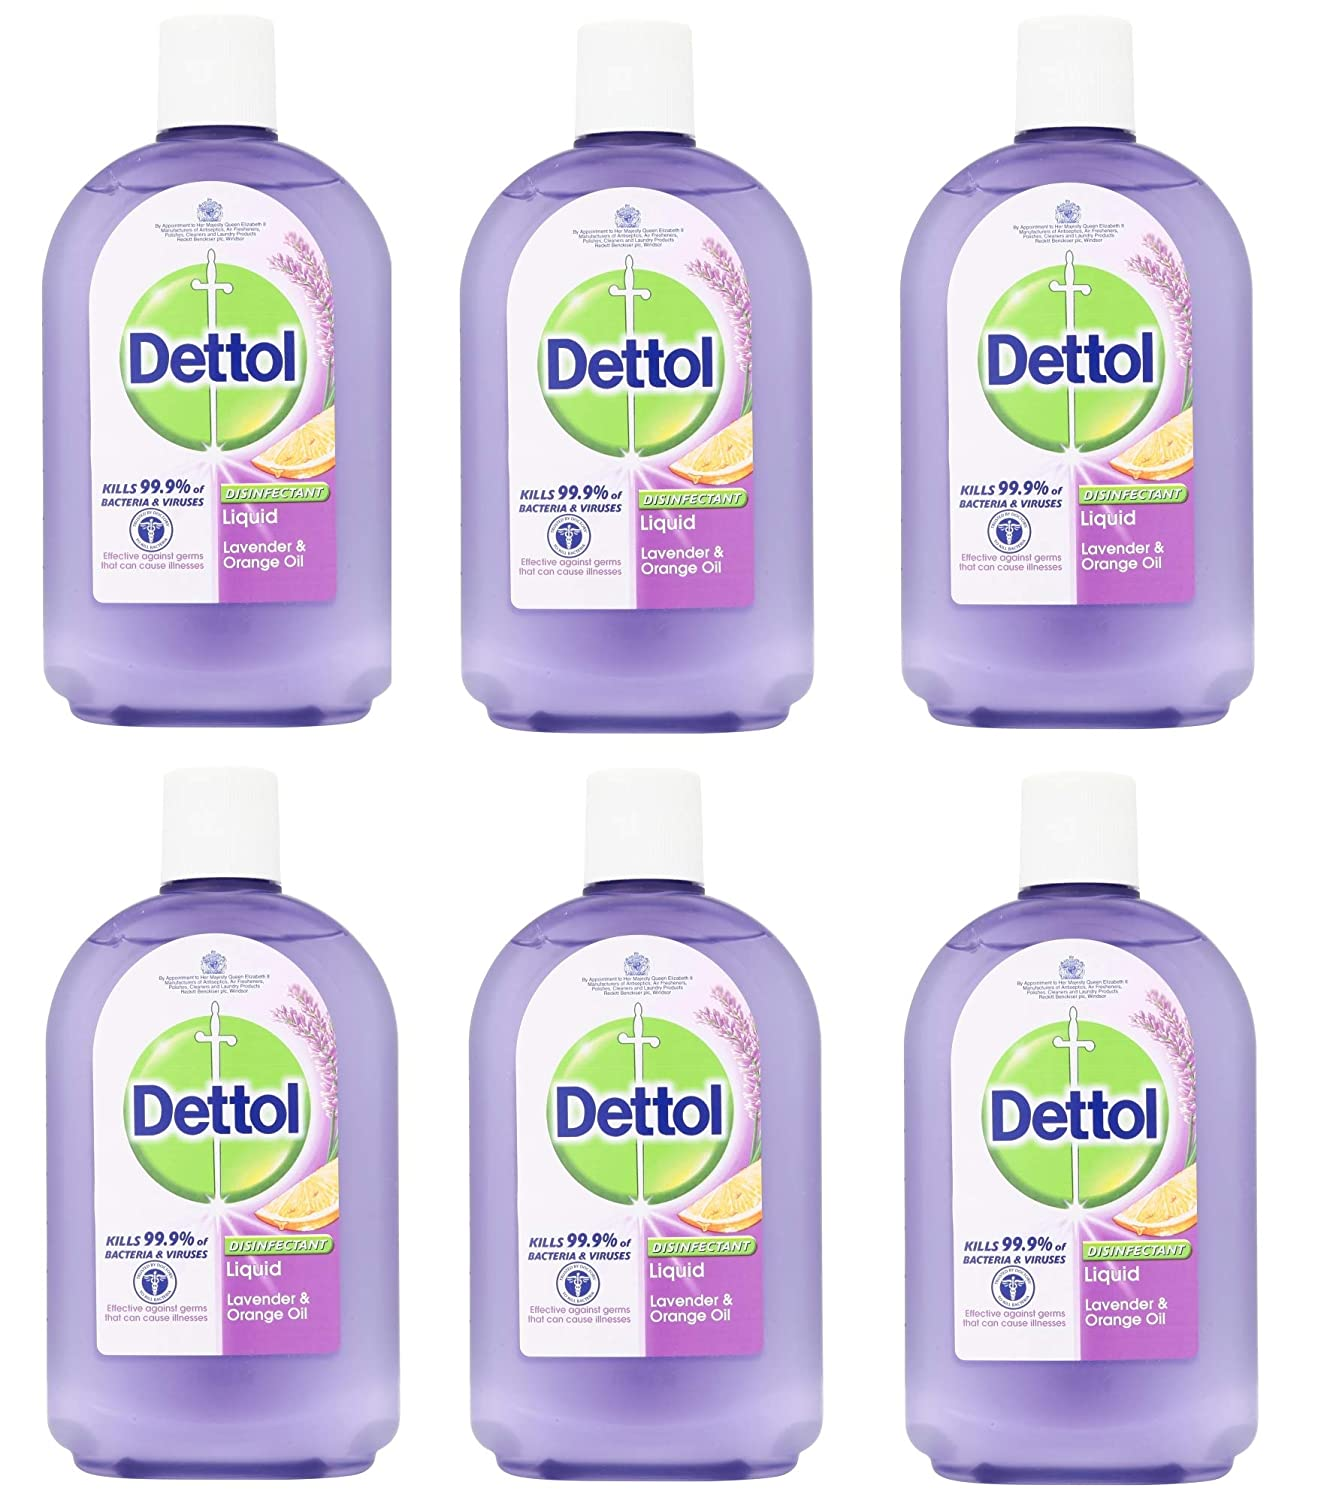 Dettol Disinfectant Liquid Lavender & Orange Oil (500ml) - Pack of 6